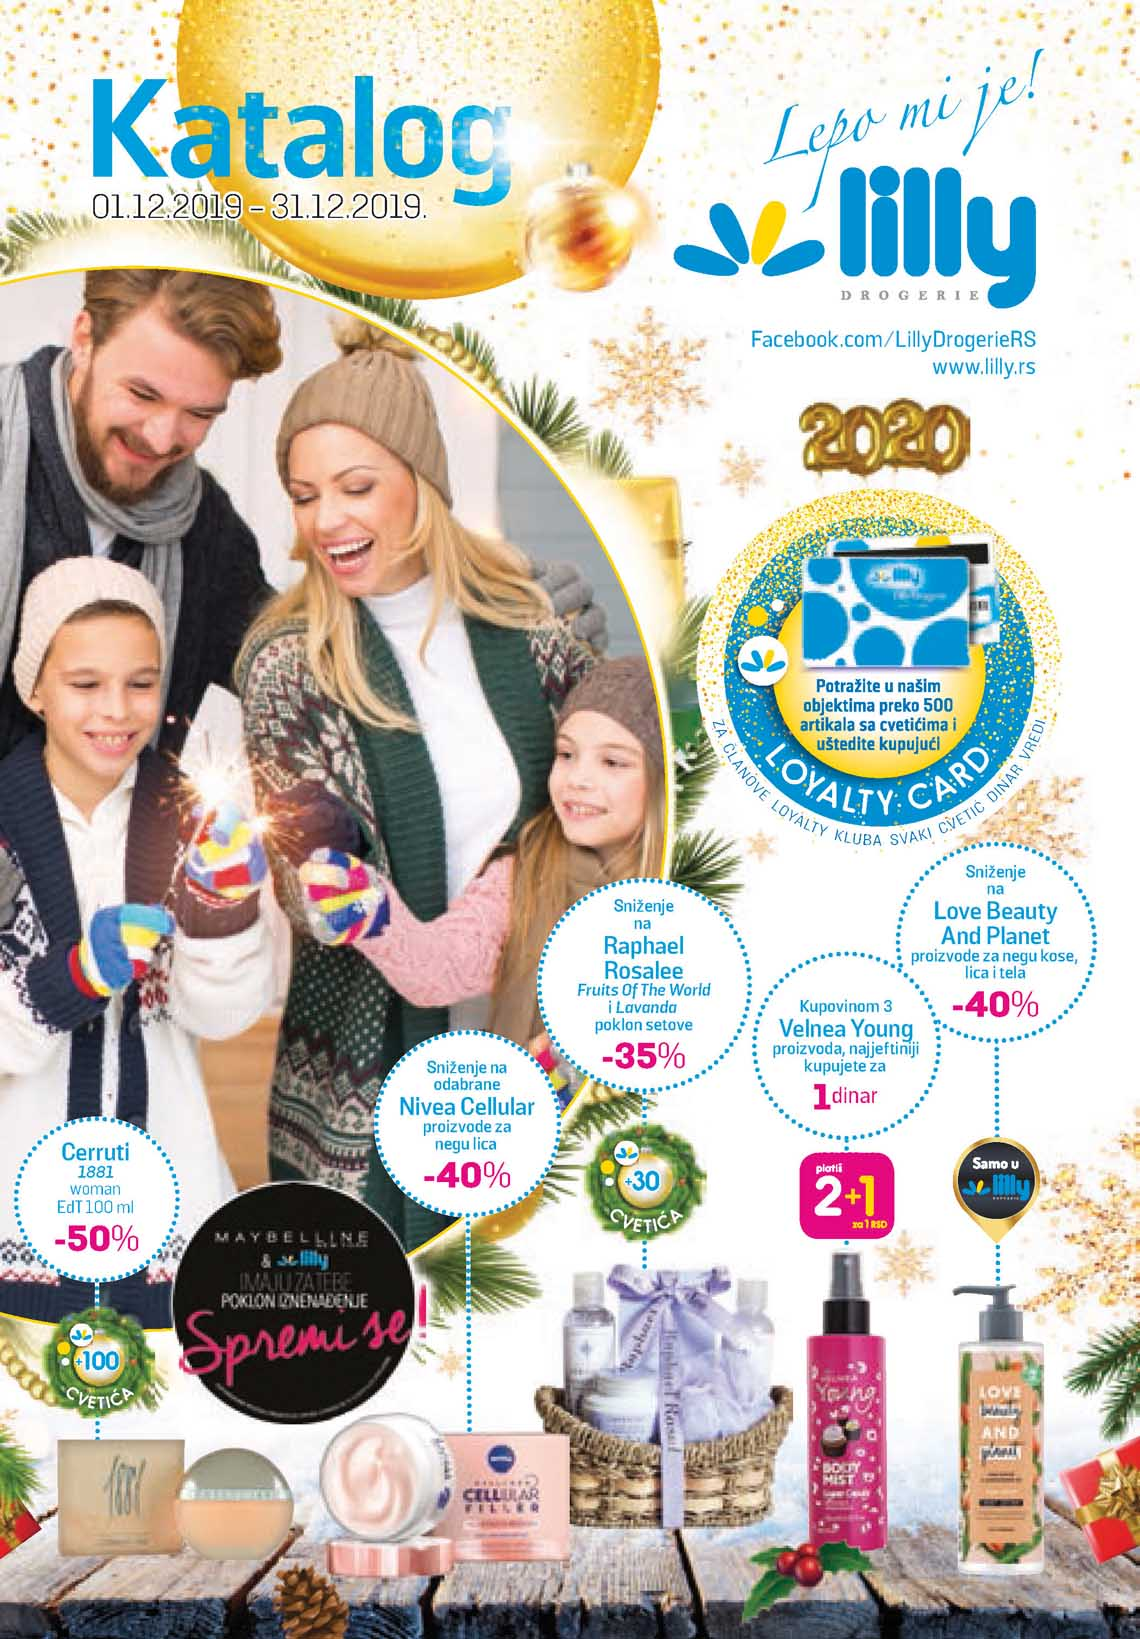 LILLY DROGERIE Katalog - Super akcija do 31.12.2019.